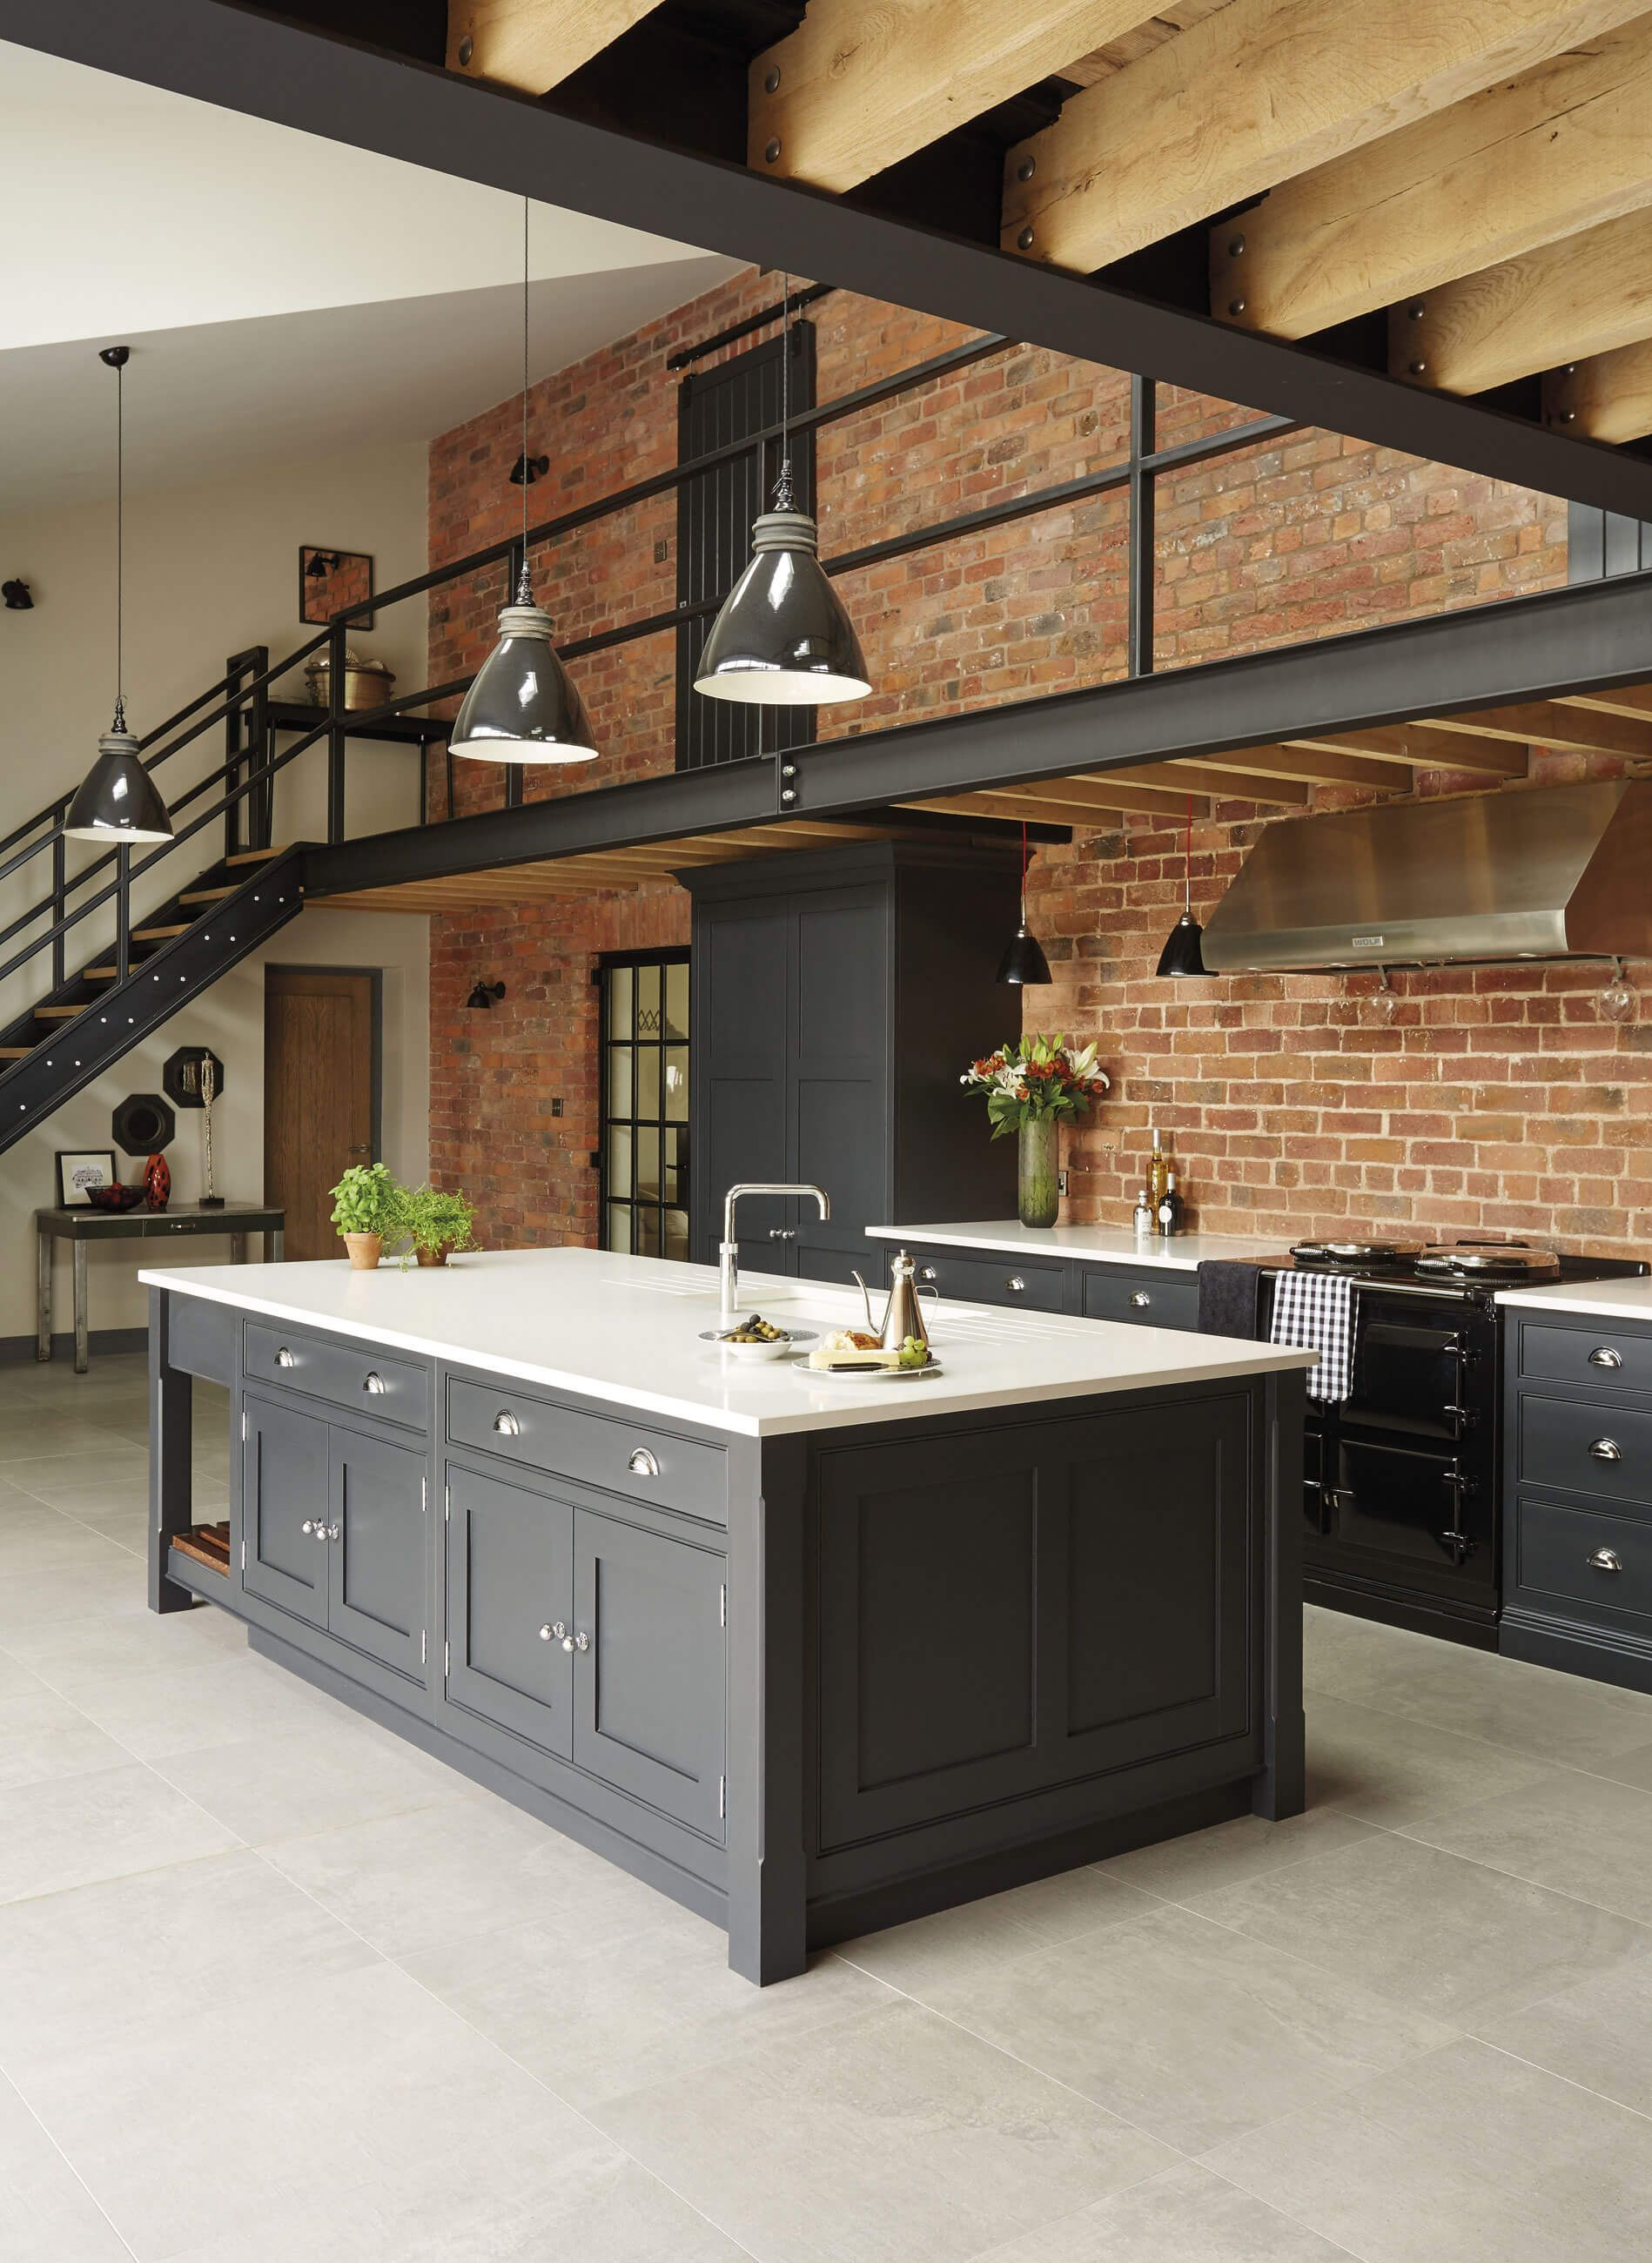 Industrial Style Kitchen Industrial Kitchen Design Industrial Style Kitchen Modern Home Interior Design